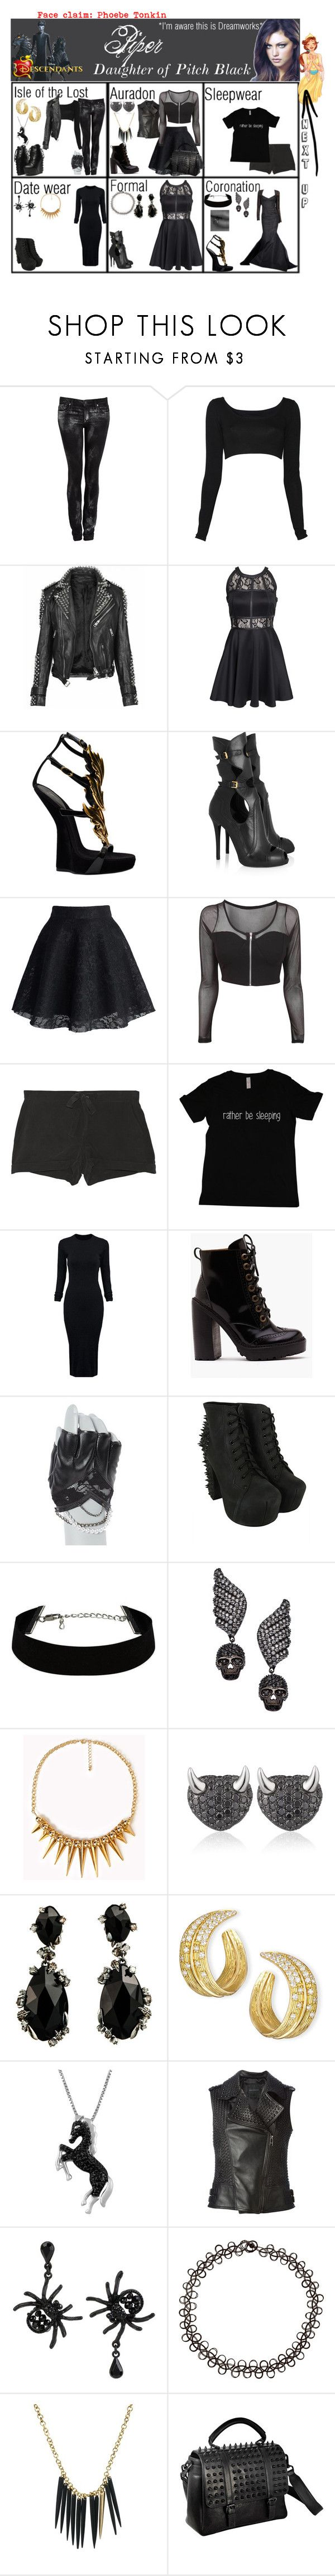 """""""Piper. Daughter of Pitch Black (I'm aware it's Dreamworks). Next up: Anastasia"""" by elmoakepoke ❤ liked on Polyvore featuring Helmut Lang, Nadia Tarr, Burberry, AX Paris, Zac Posen, Giuseppe Zanotti, Alexander McQueen, Chicwish, Equipment and WithChic"""